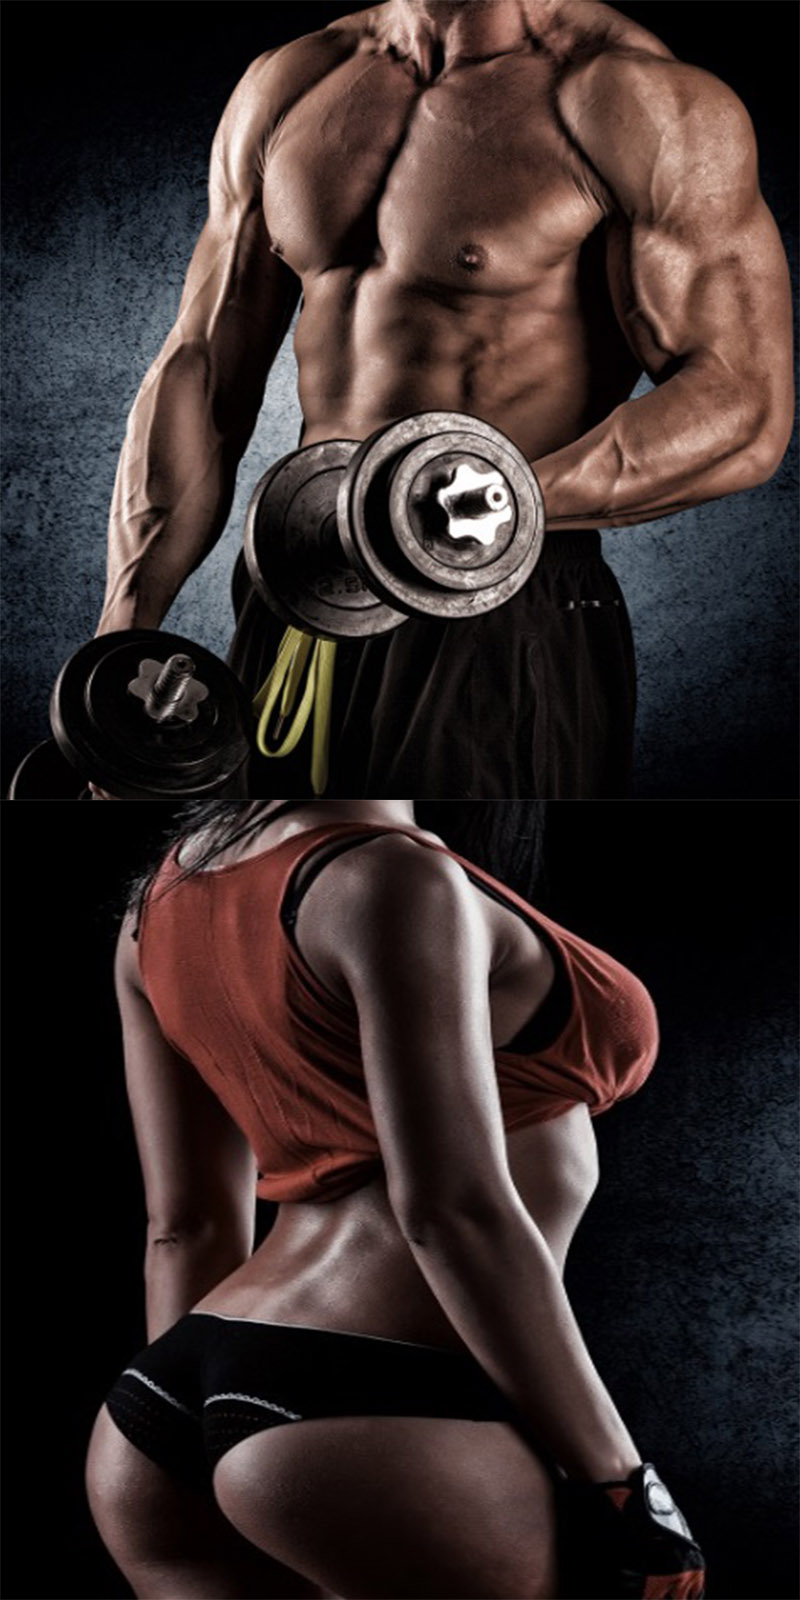 Our Top 20 Most Popular Workout Programs - Our Top 20 Most Popular Workout Programs